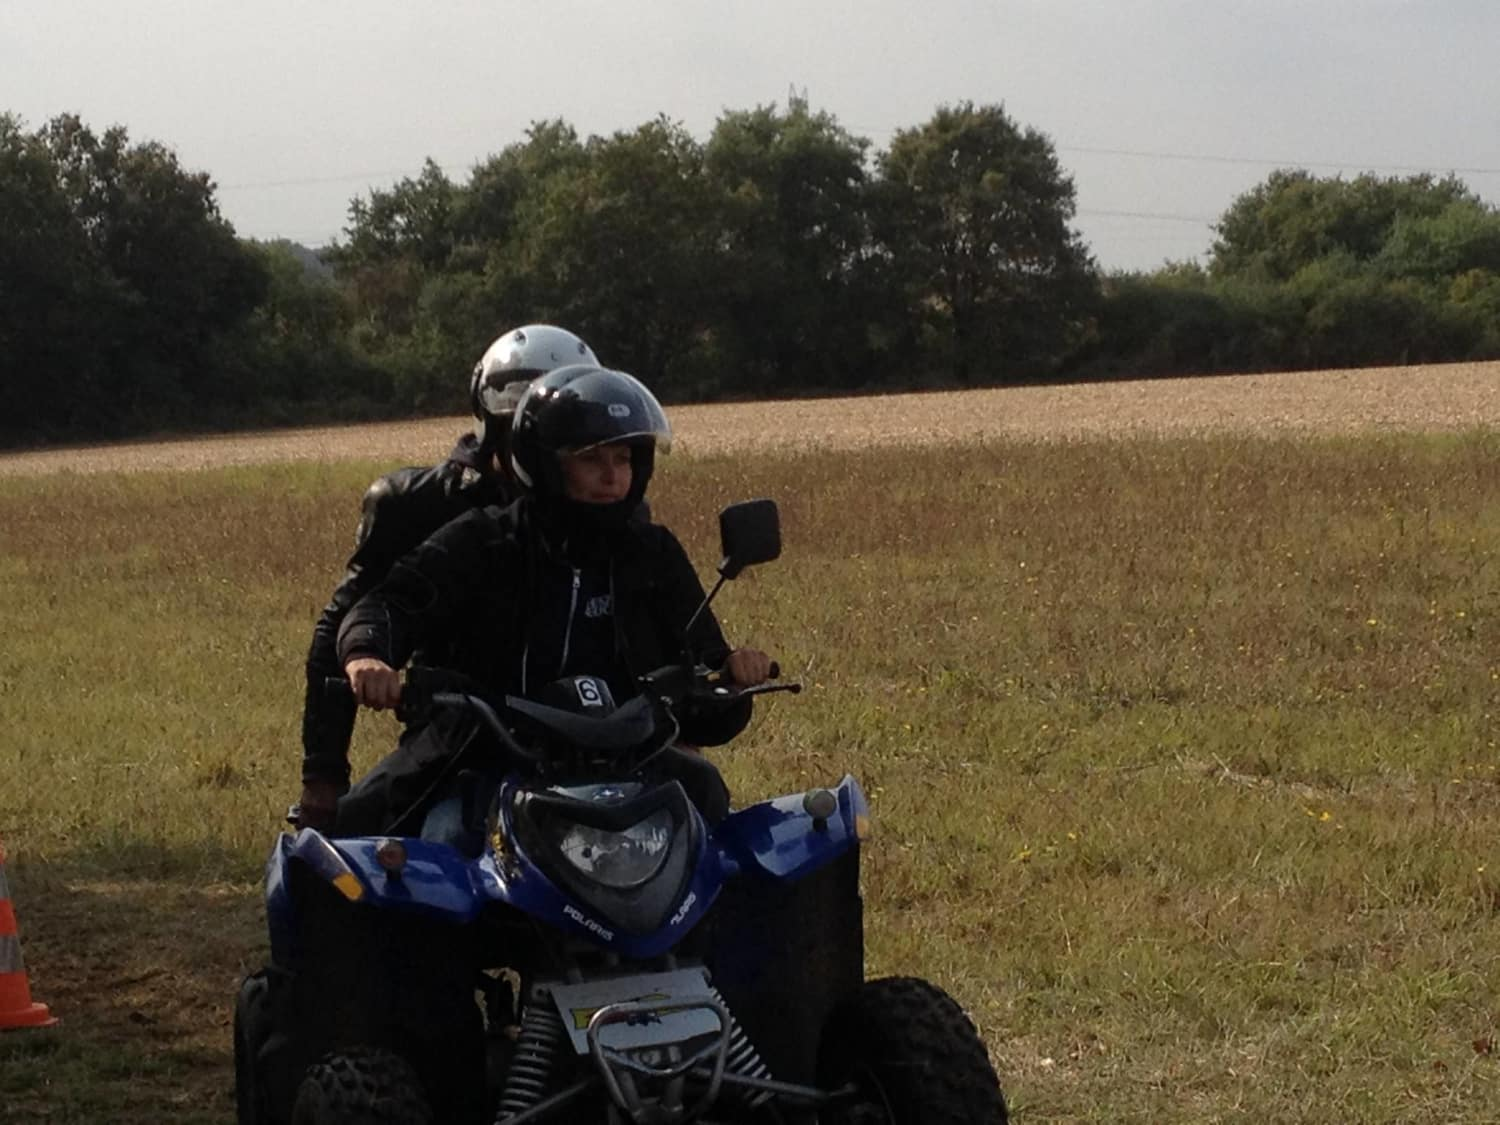 Family Quad - Boutervilliers